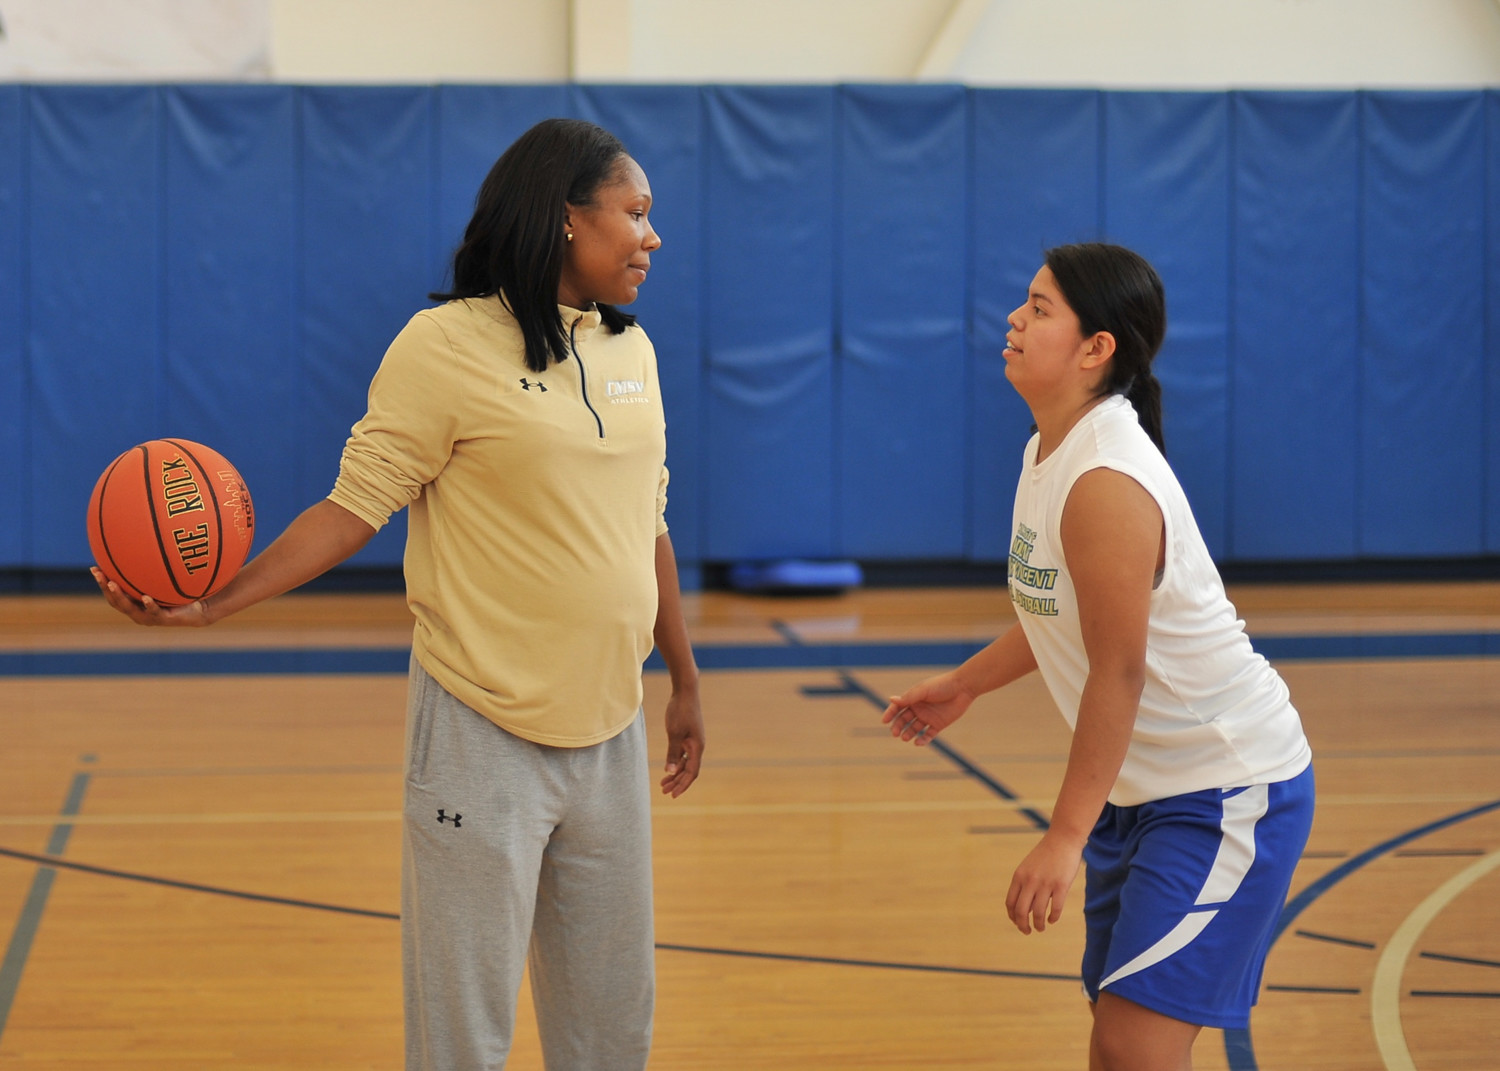 New Mount Saint Vincent women's basketball coach Tiffany Smart has hit the ground running since being hired in September.